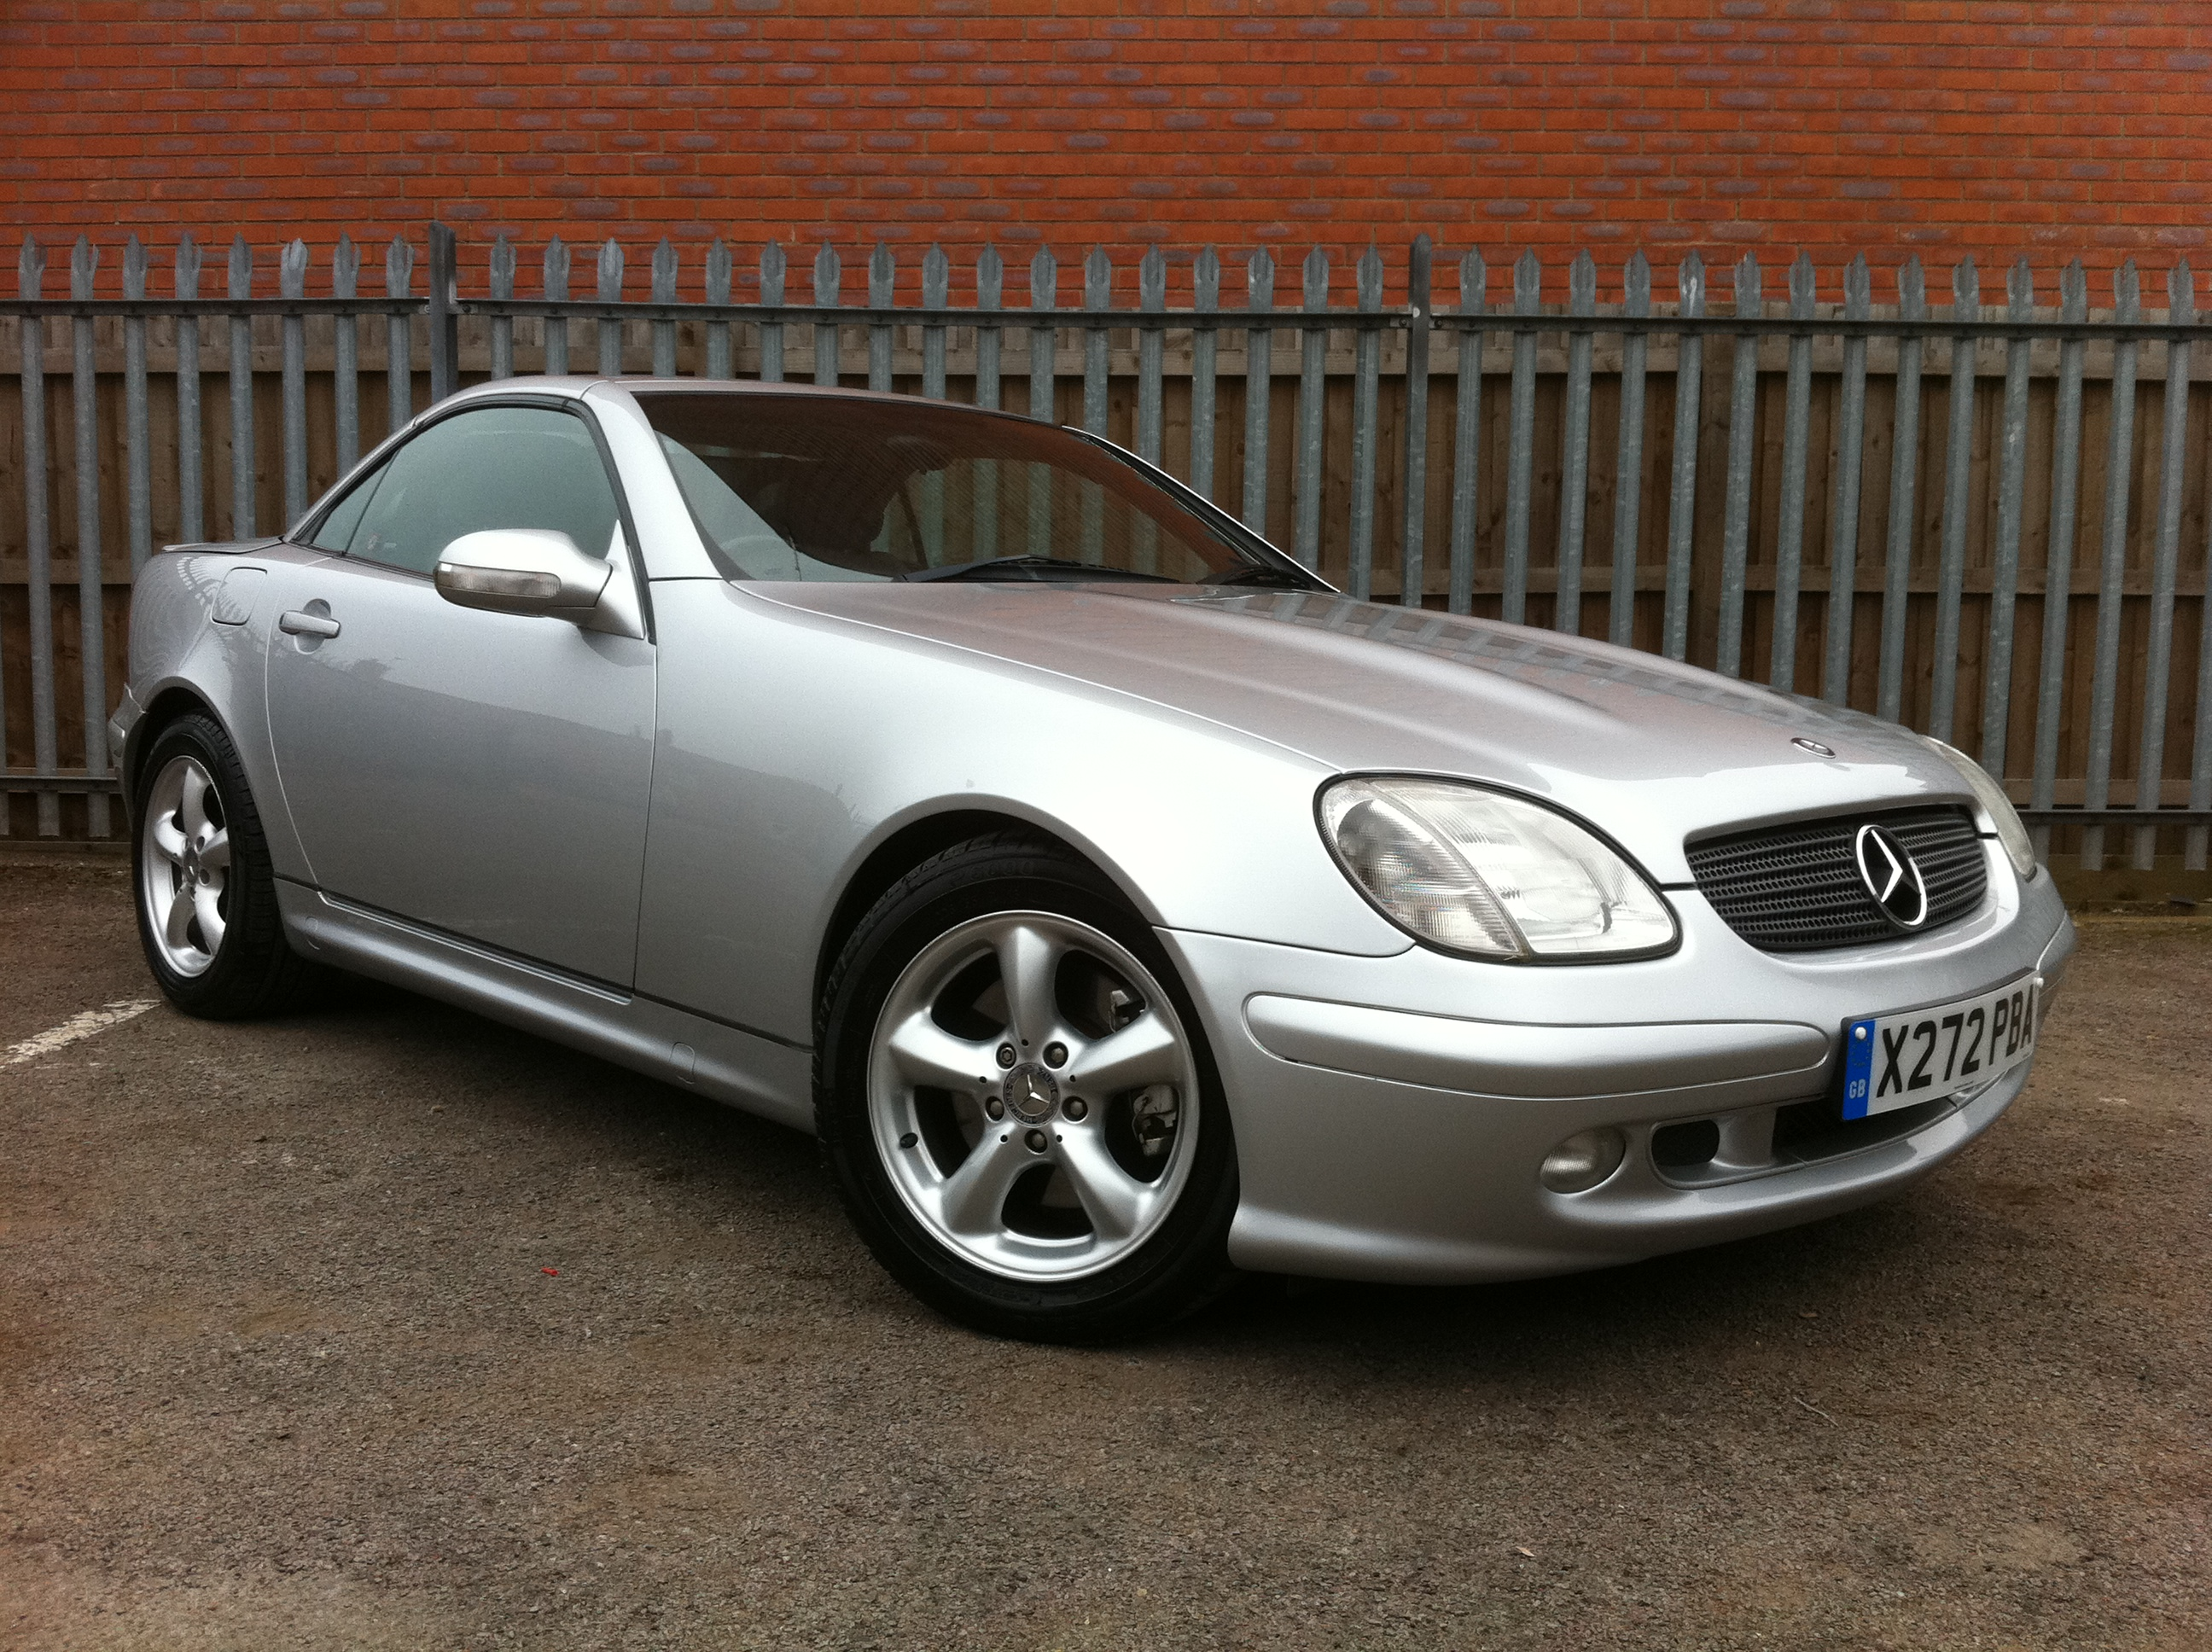 mercedes benz slk 320 2dr tip auto convertible full service history full leather immaculate. Black Bedroom Furniture Sets. Home Design Ideas